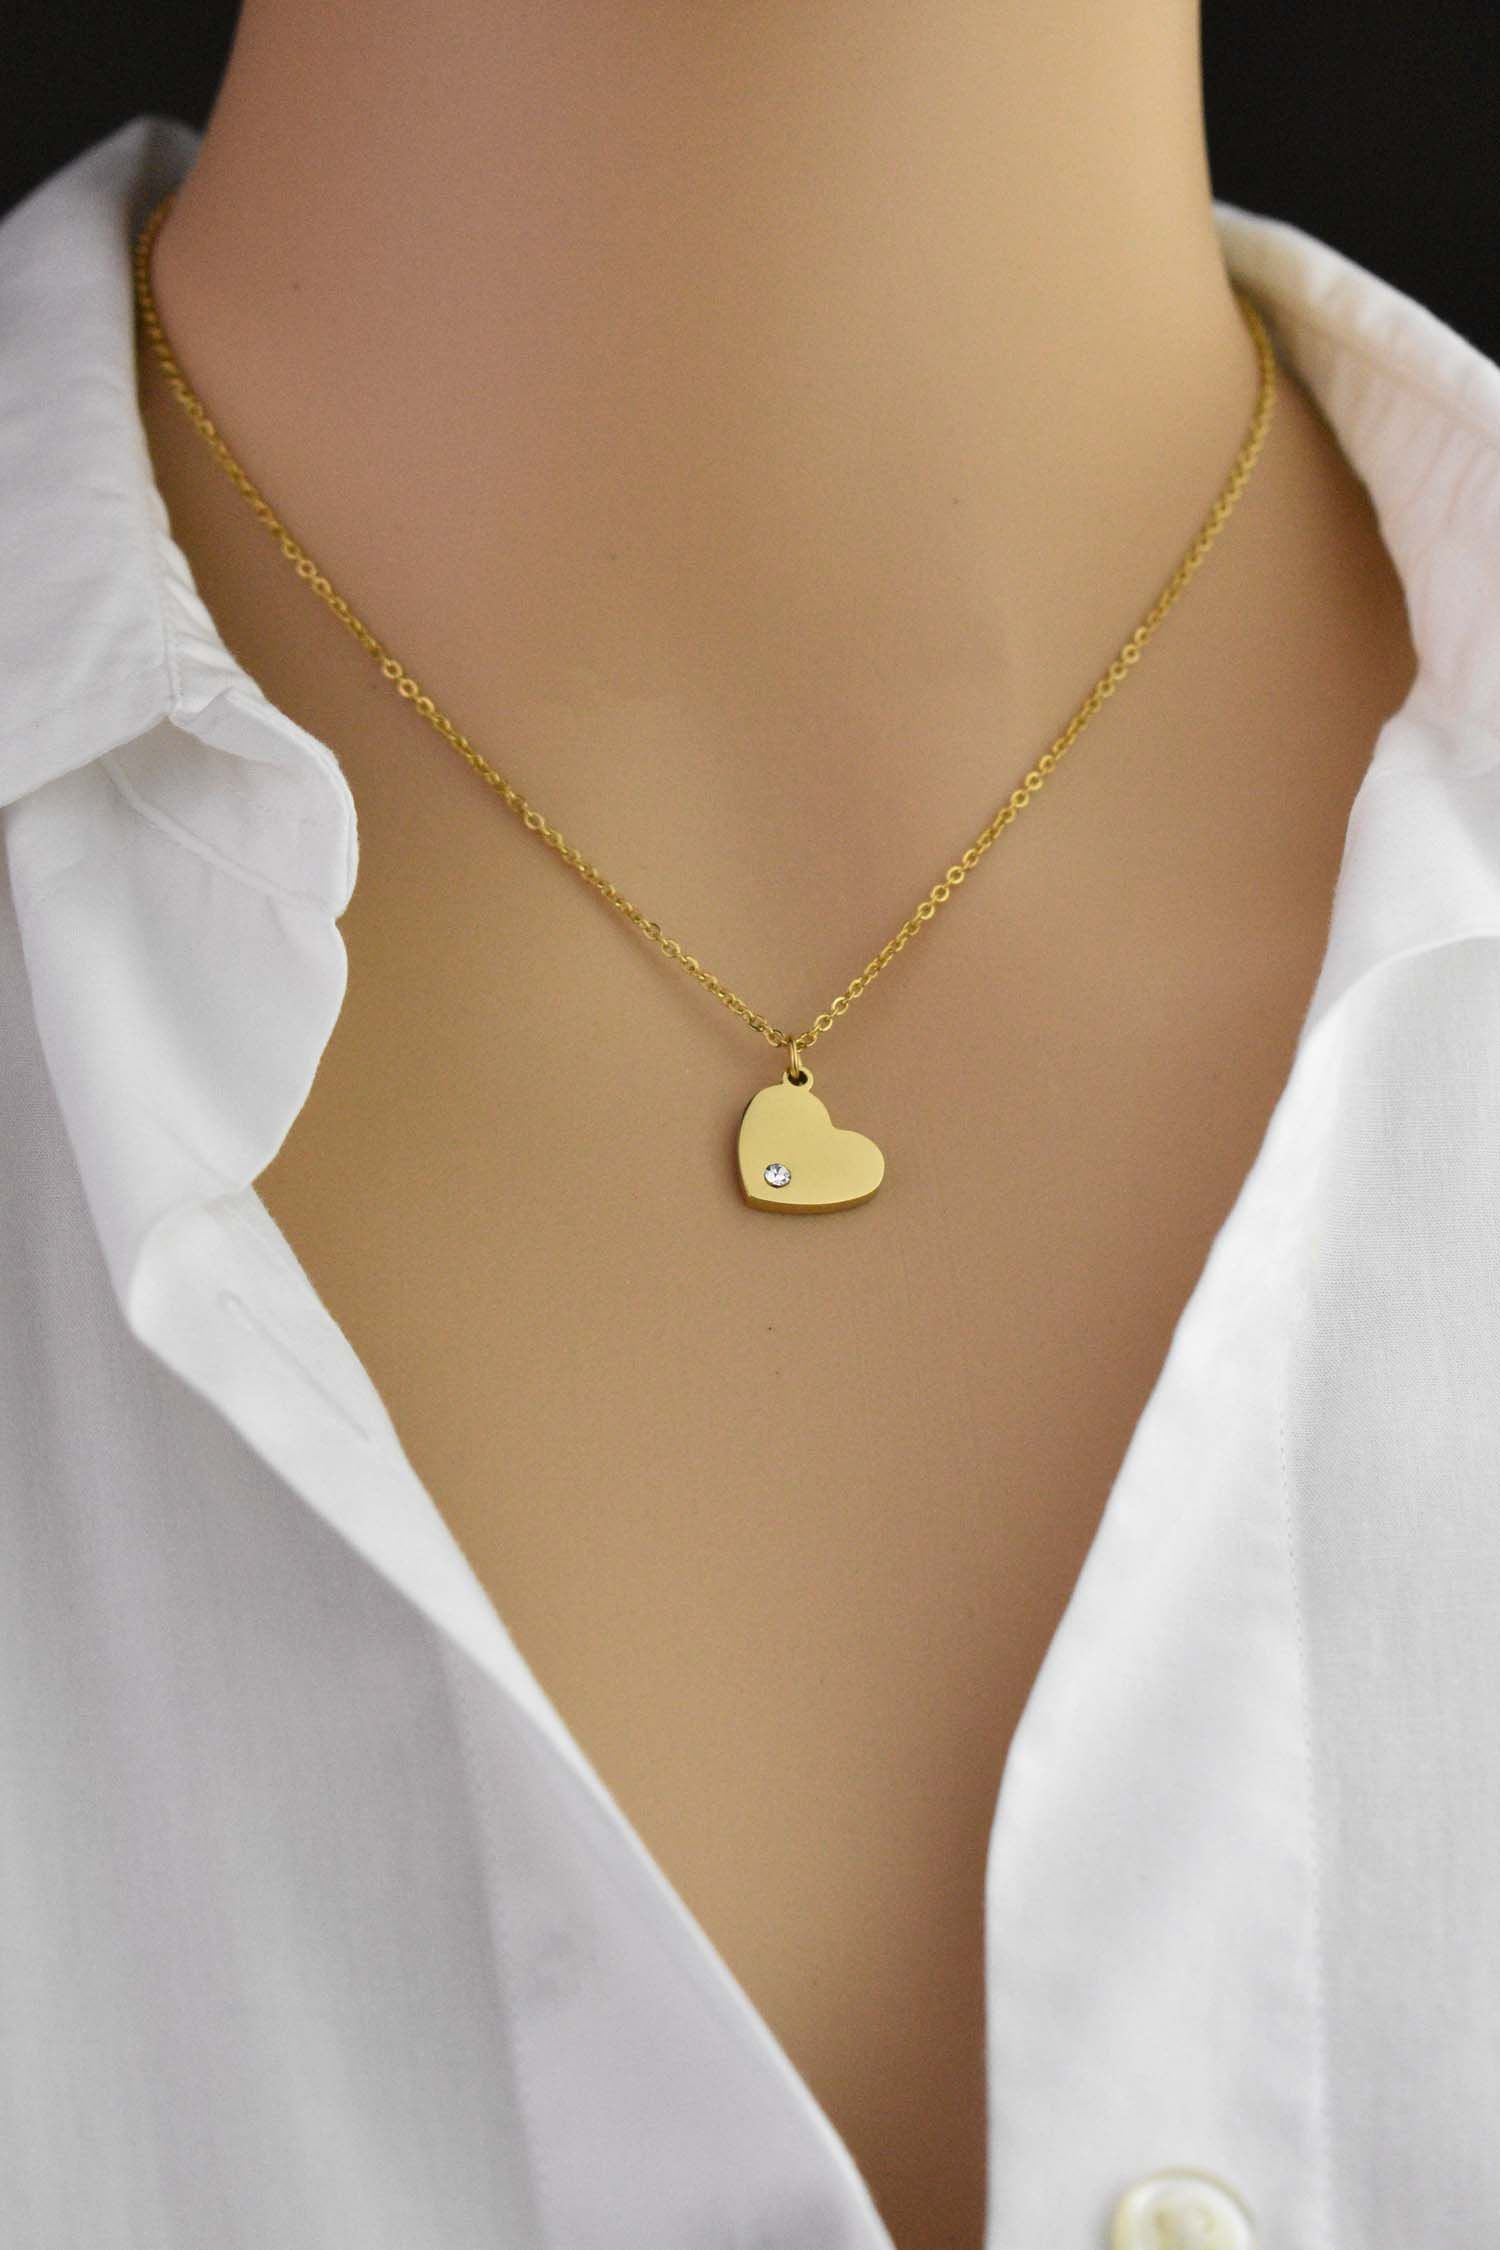 1ce90ea4d26c9 Personalized Birthstone Heart Necklace, Gifts for her, Birthstone ...